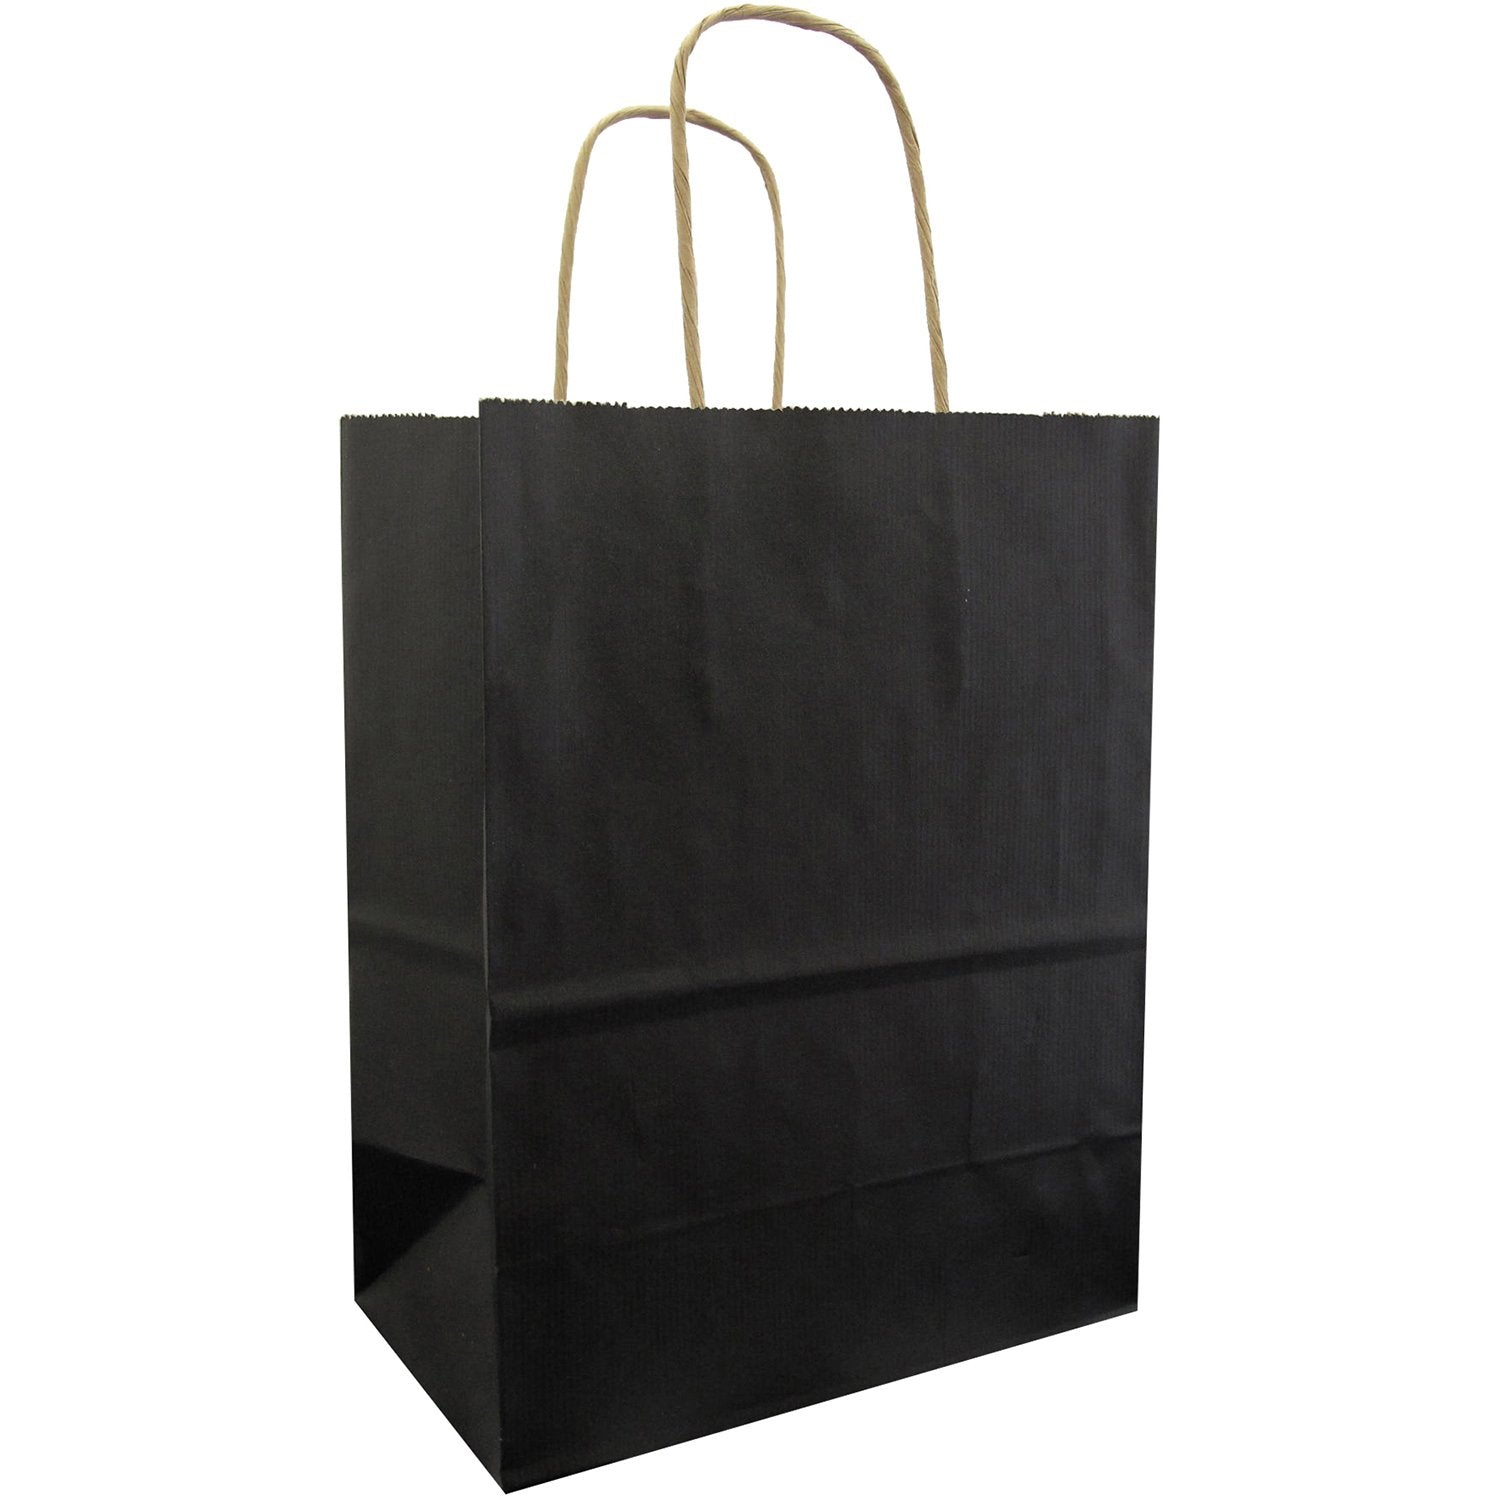 Jillson & Roberts Medium Kraft Bags, Black